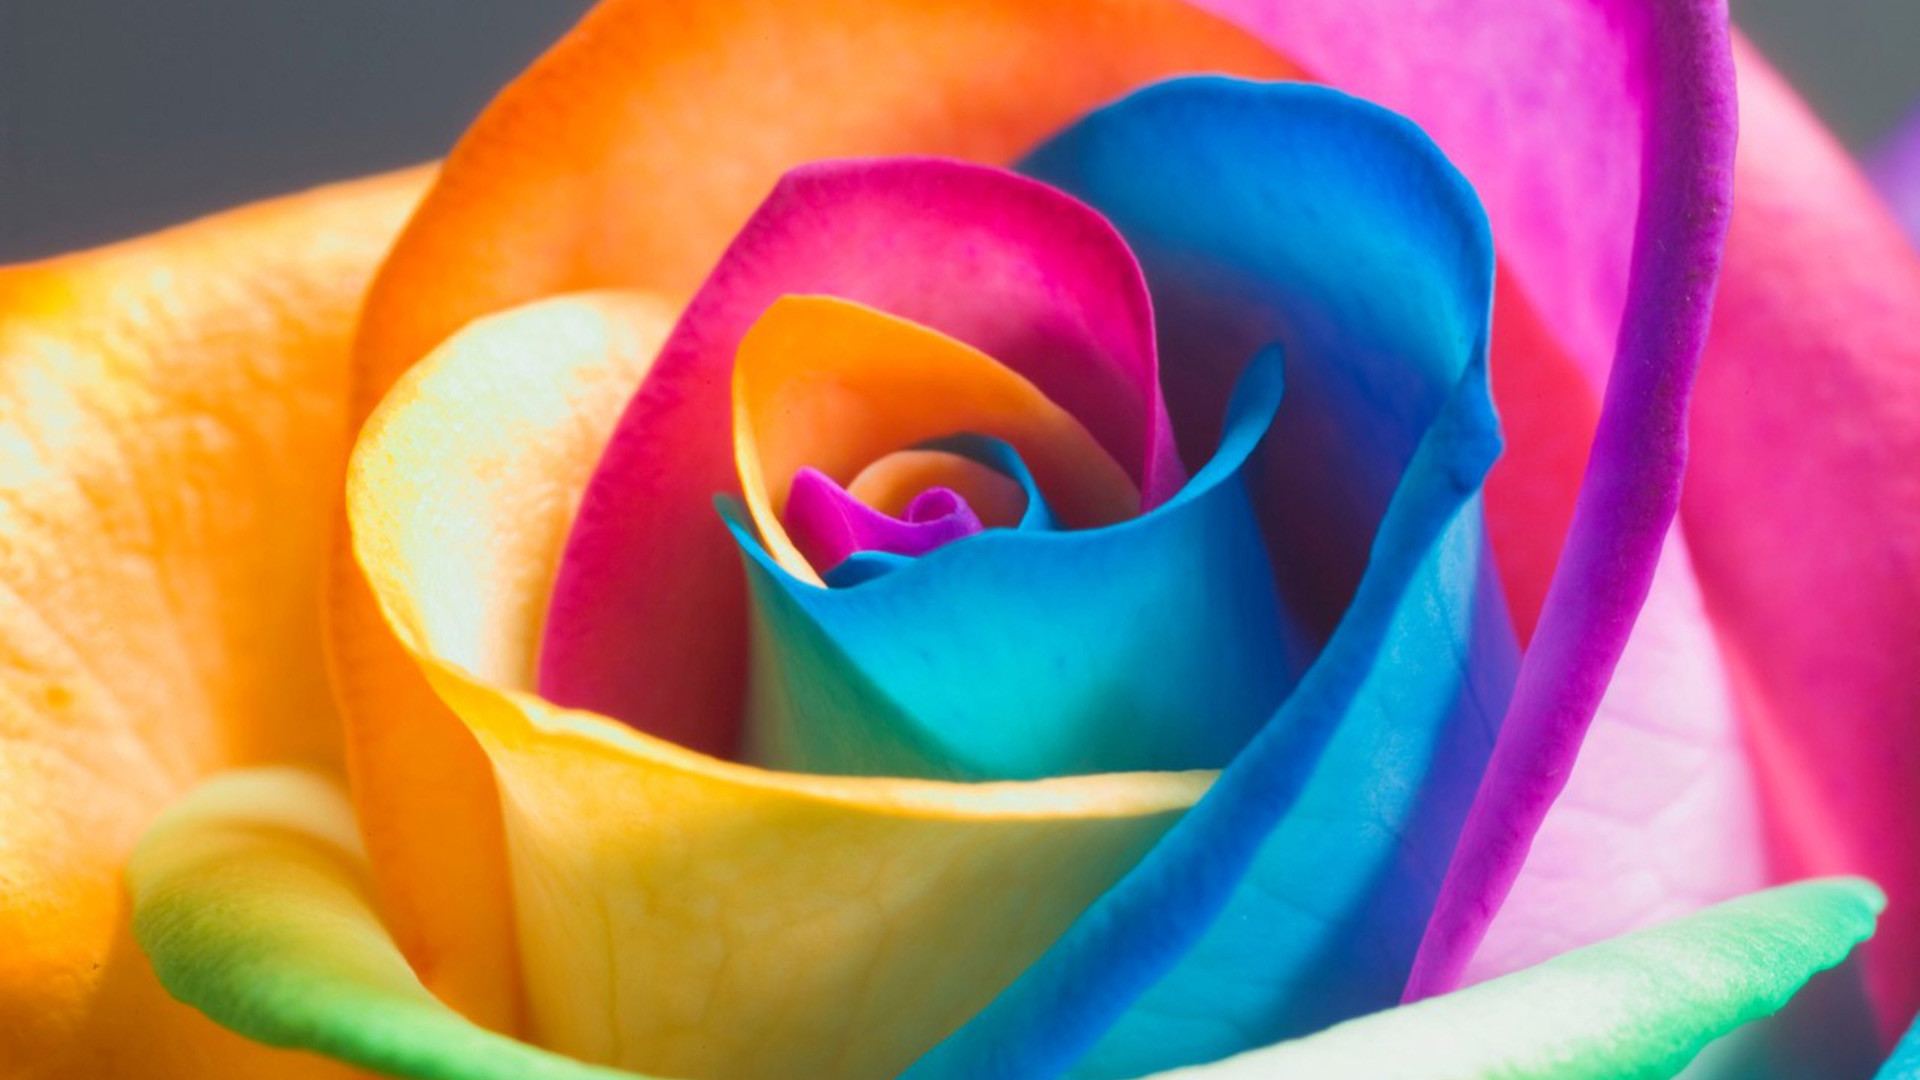 1920x1080 HQ RES Wallpapers of Colorful Rose